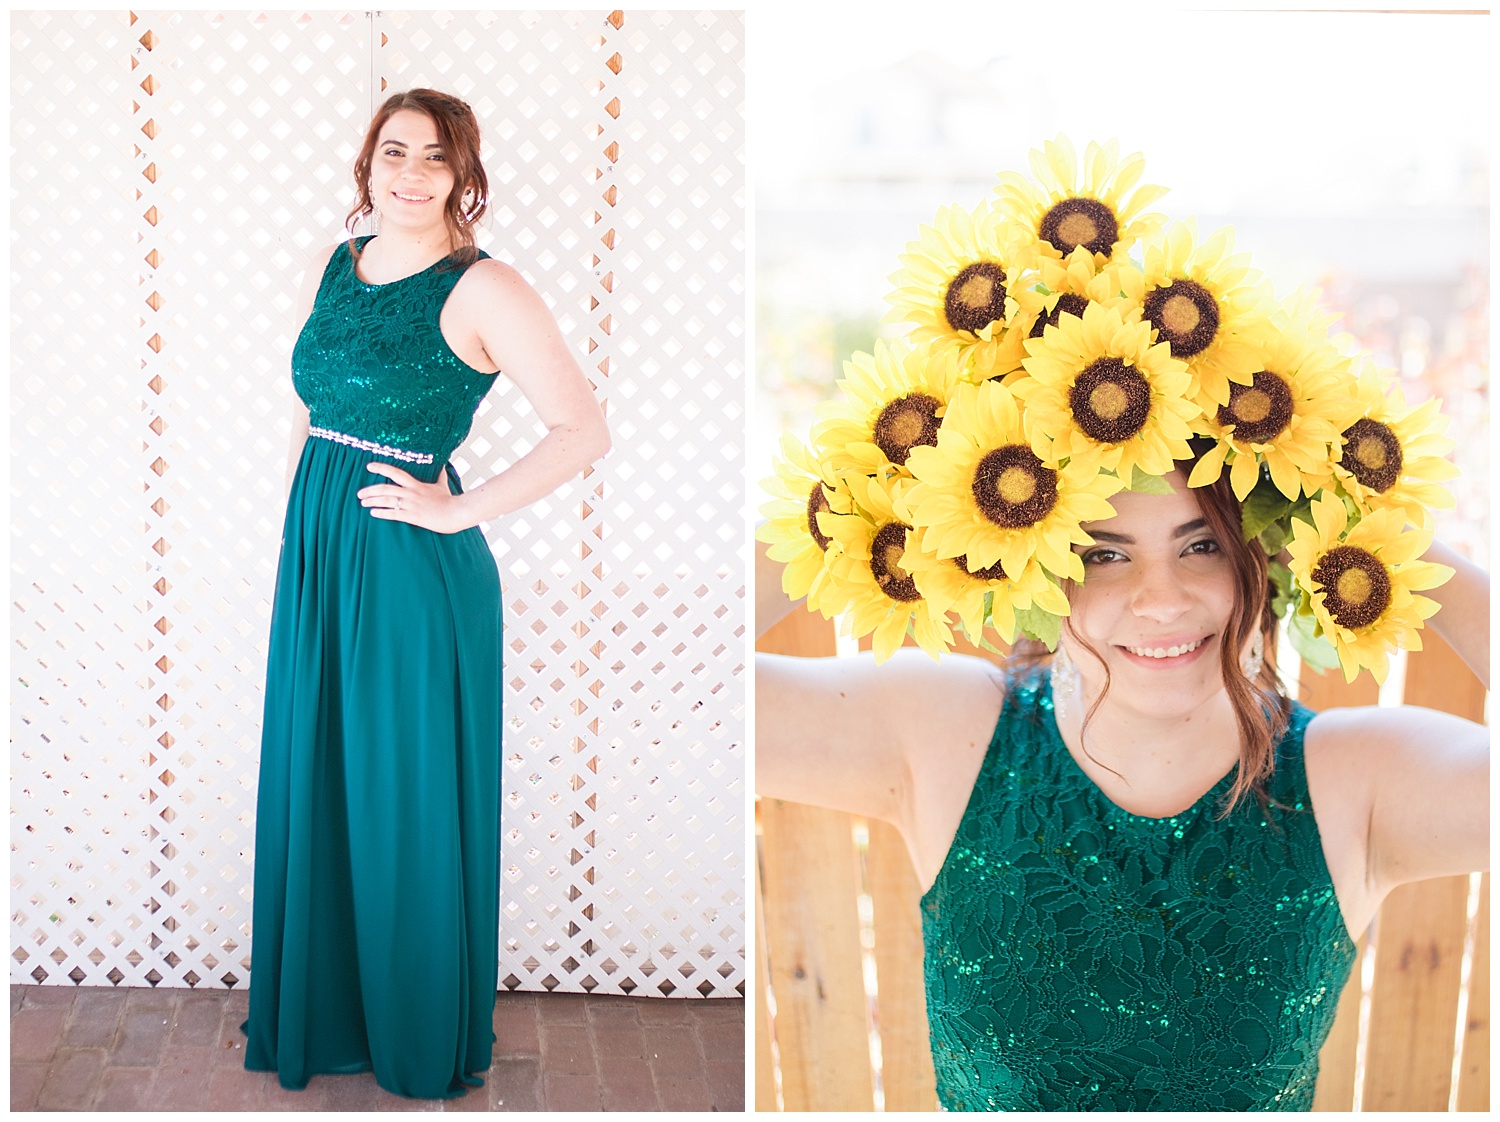 Senior photos with sunflowers and a green prom dress on a swing.